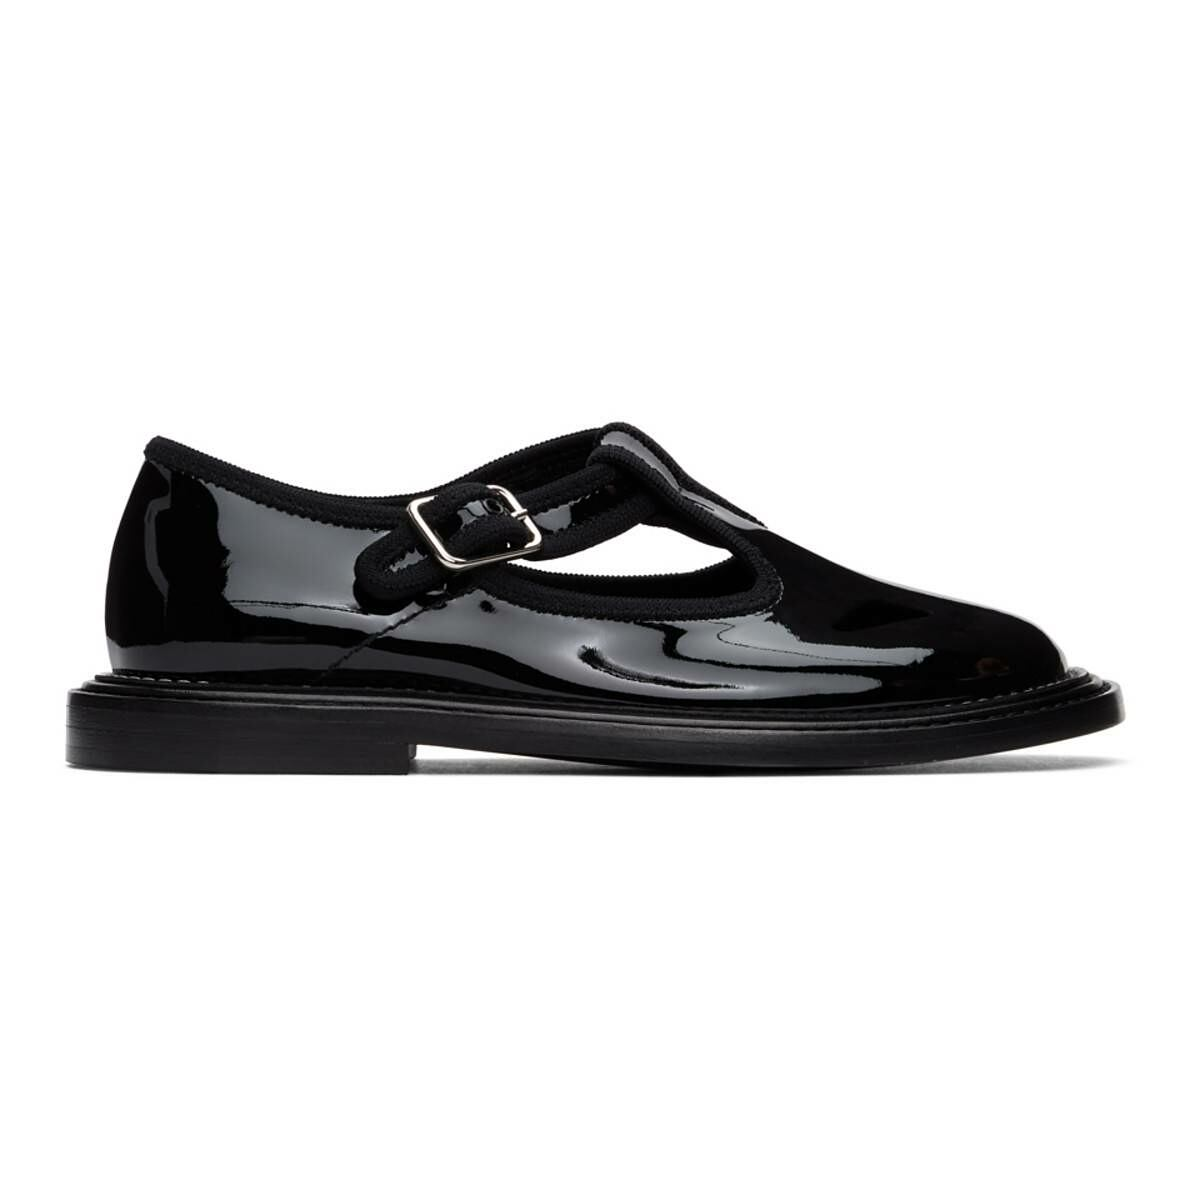 Burberry Black Patent Alannis Flat Derbys Ssense USA WOMEN Women SHOES Womens LEATHER SHOES